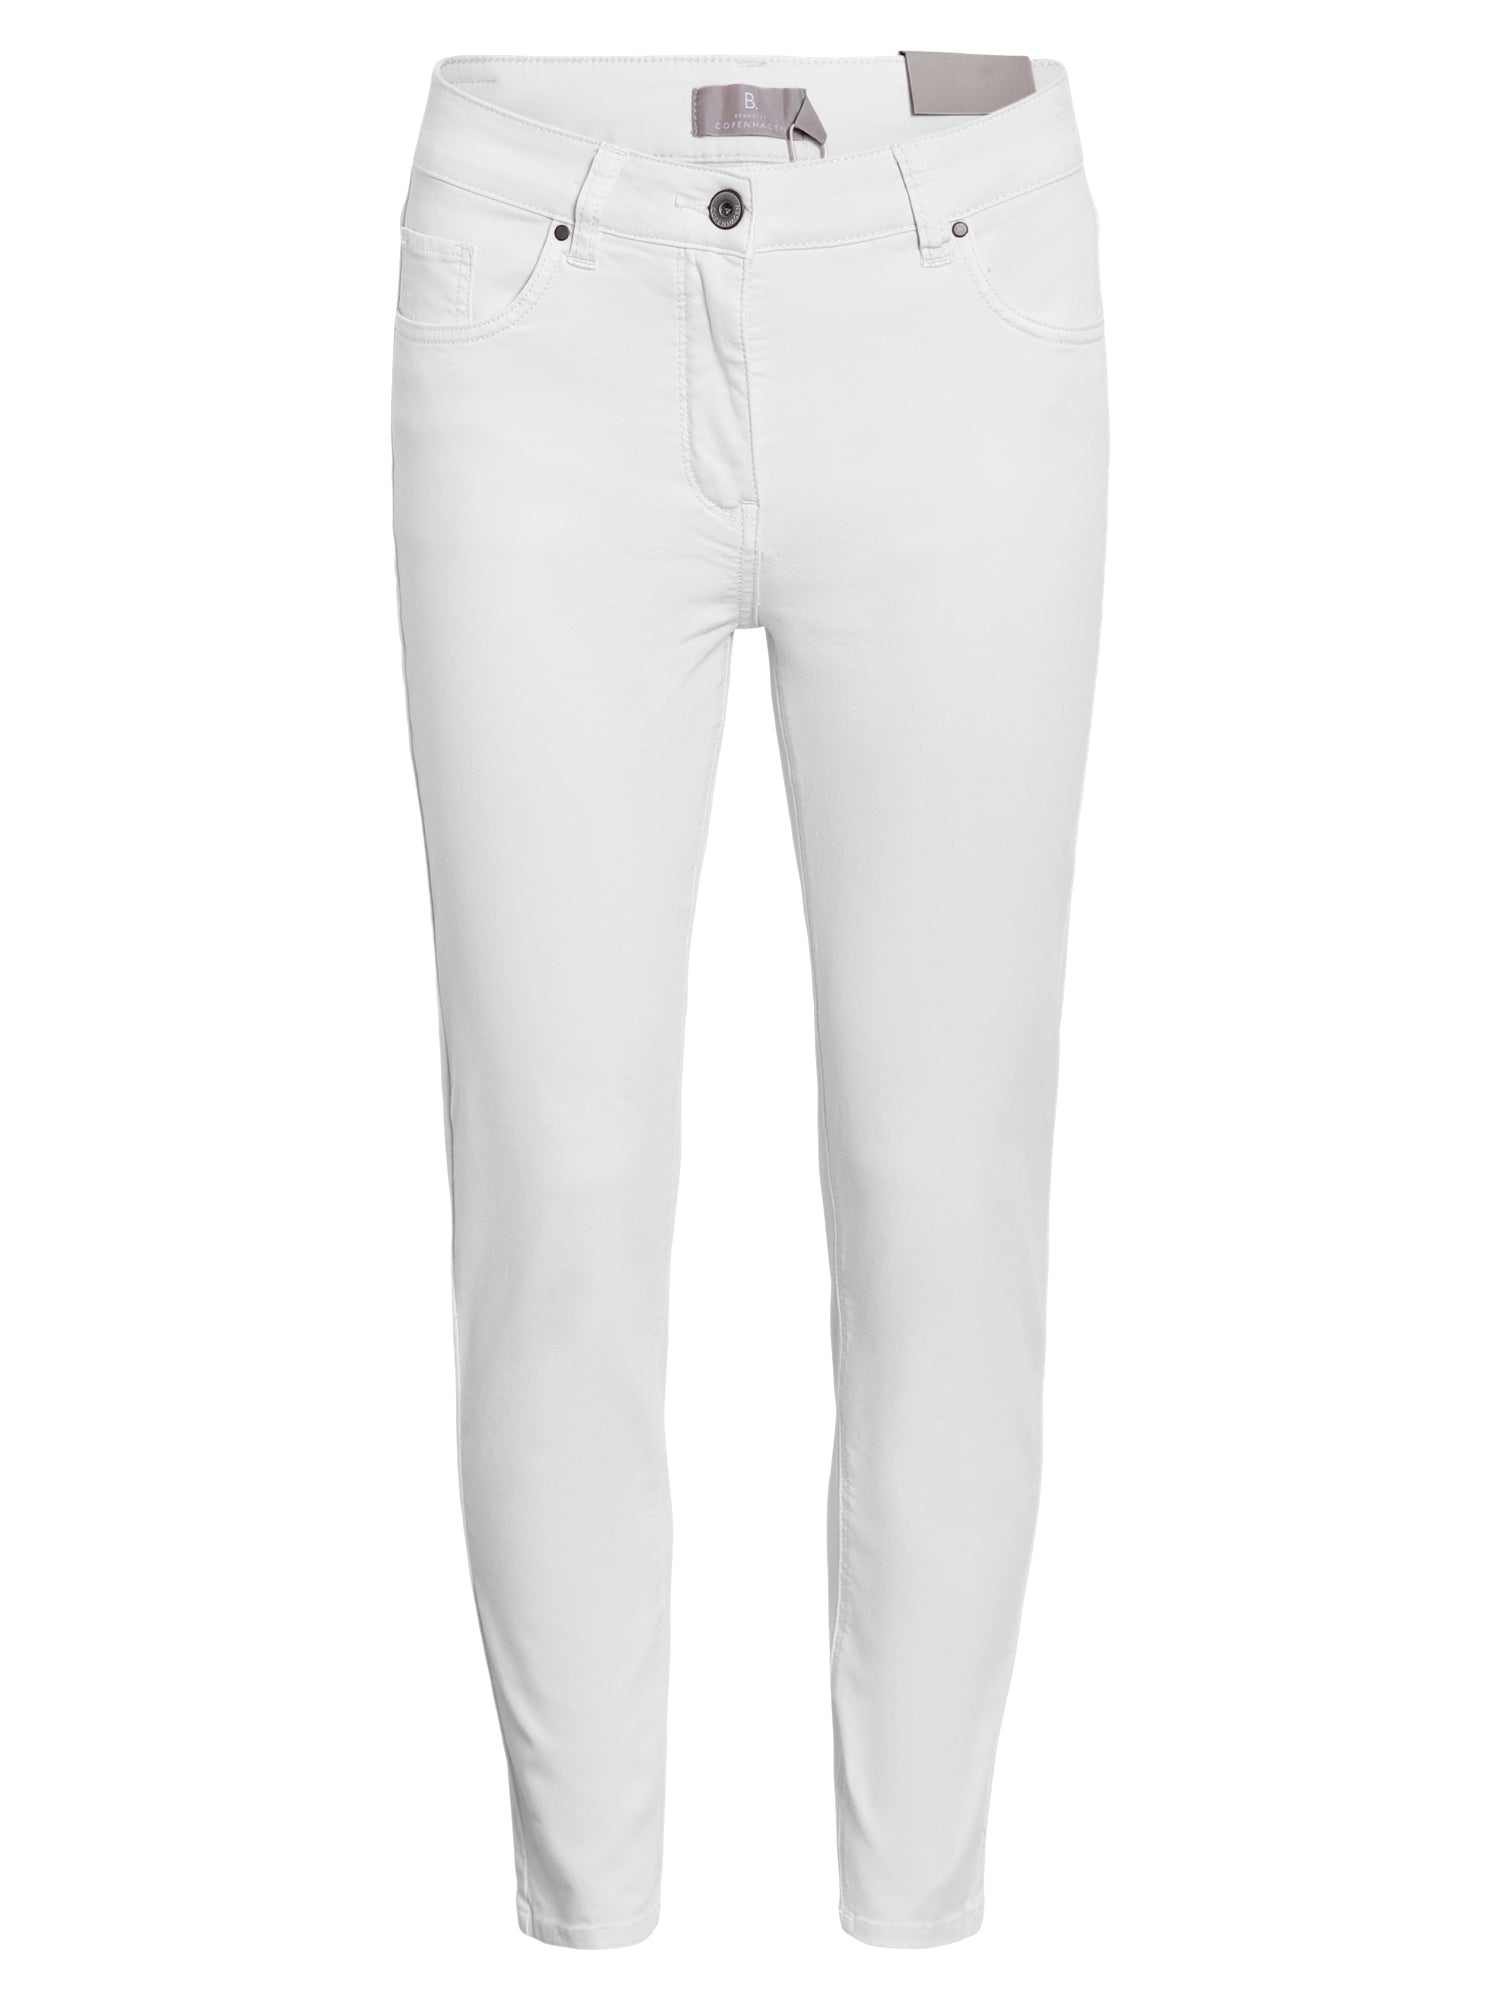 Image of   7/8 Jeans Madelaine - White